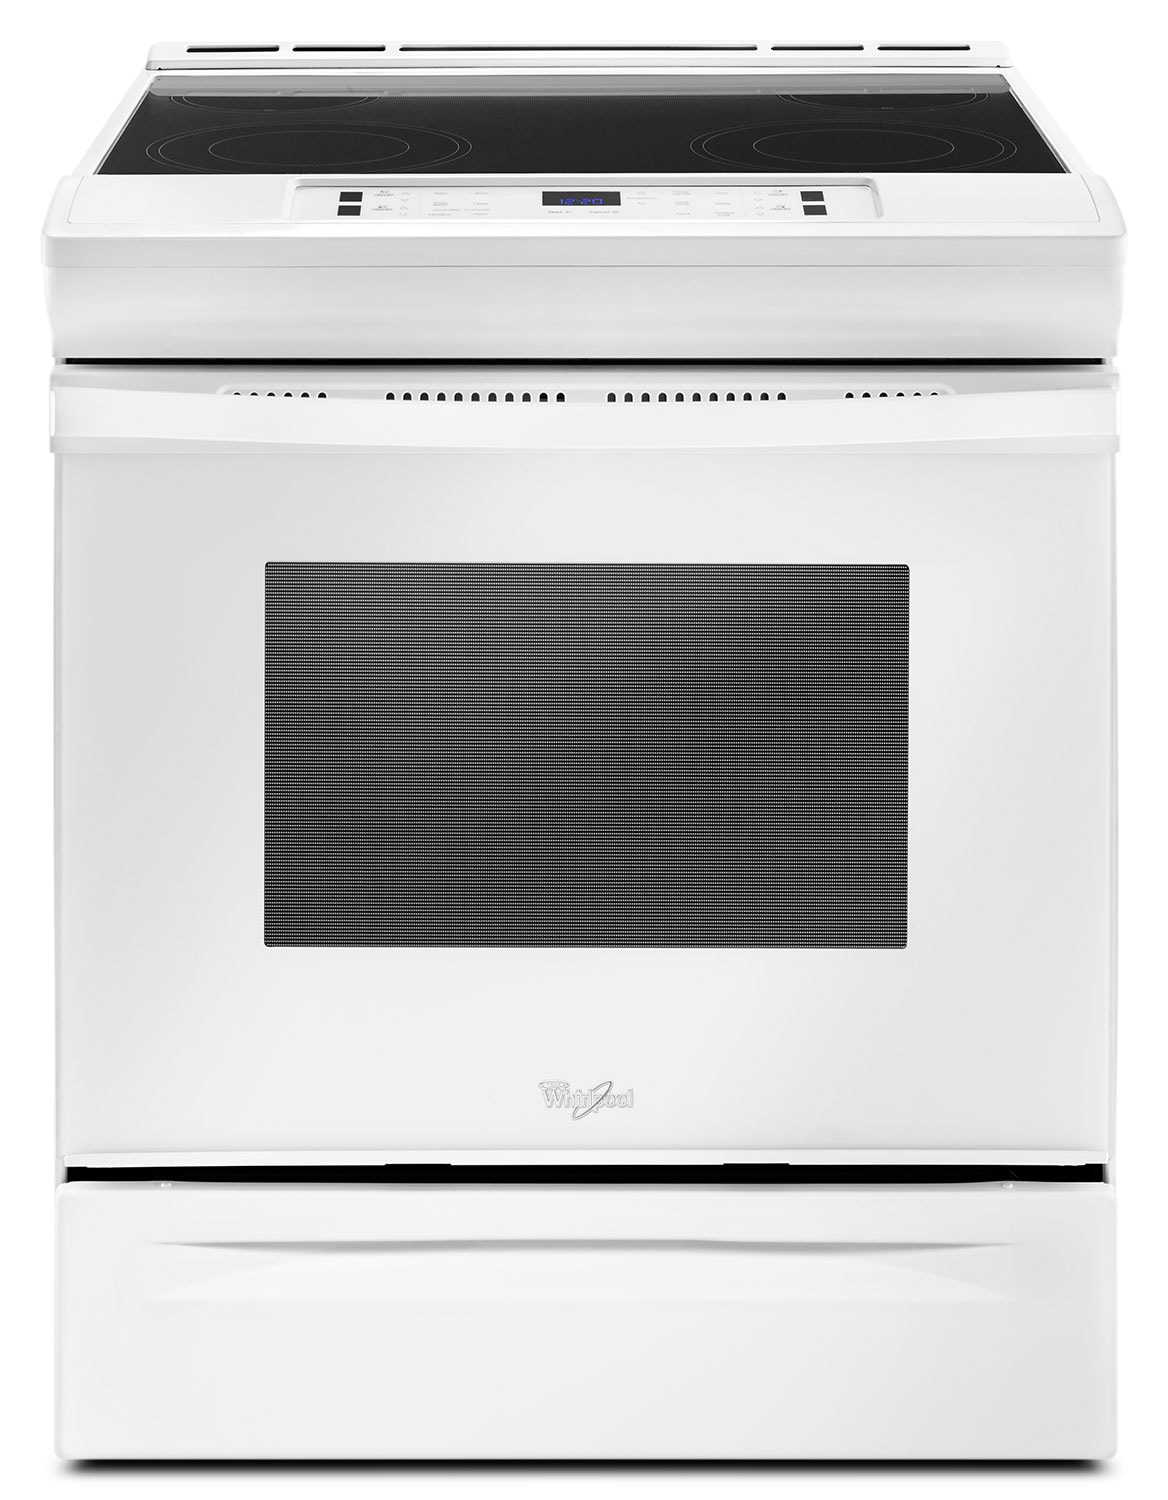 Whirlpool 4.8 Cu. Ft. Electric Slide-In Range – YWEE510S0FW